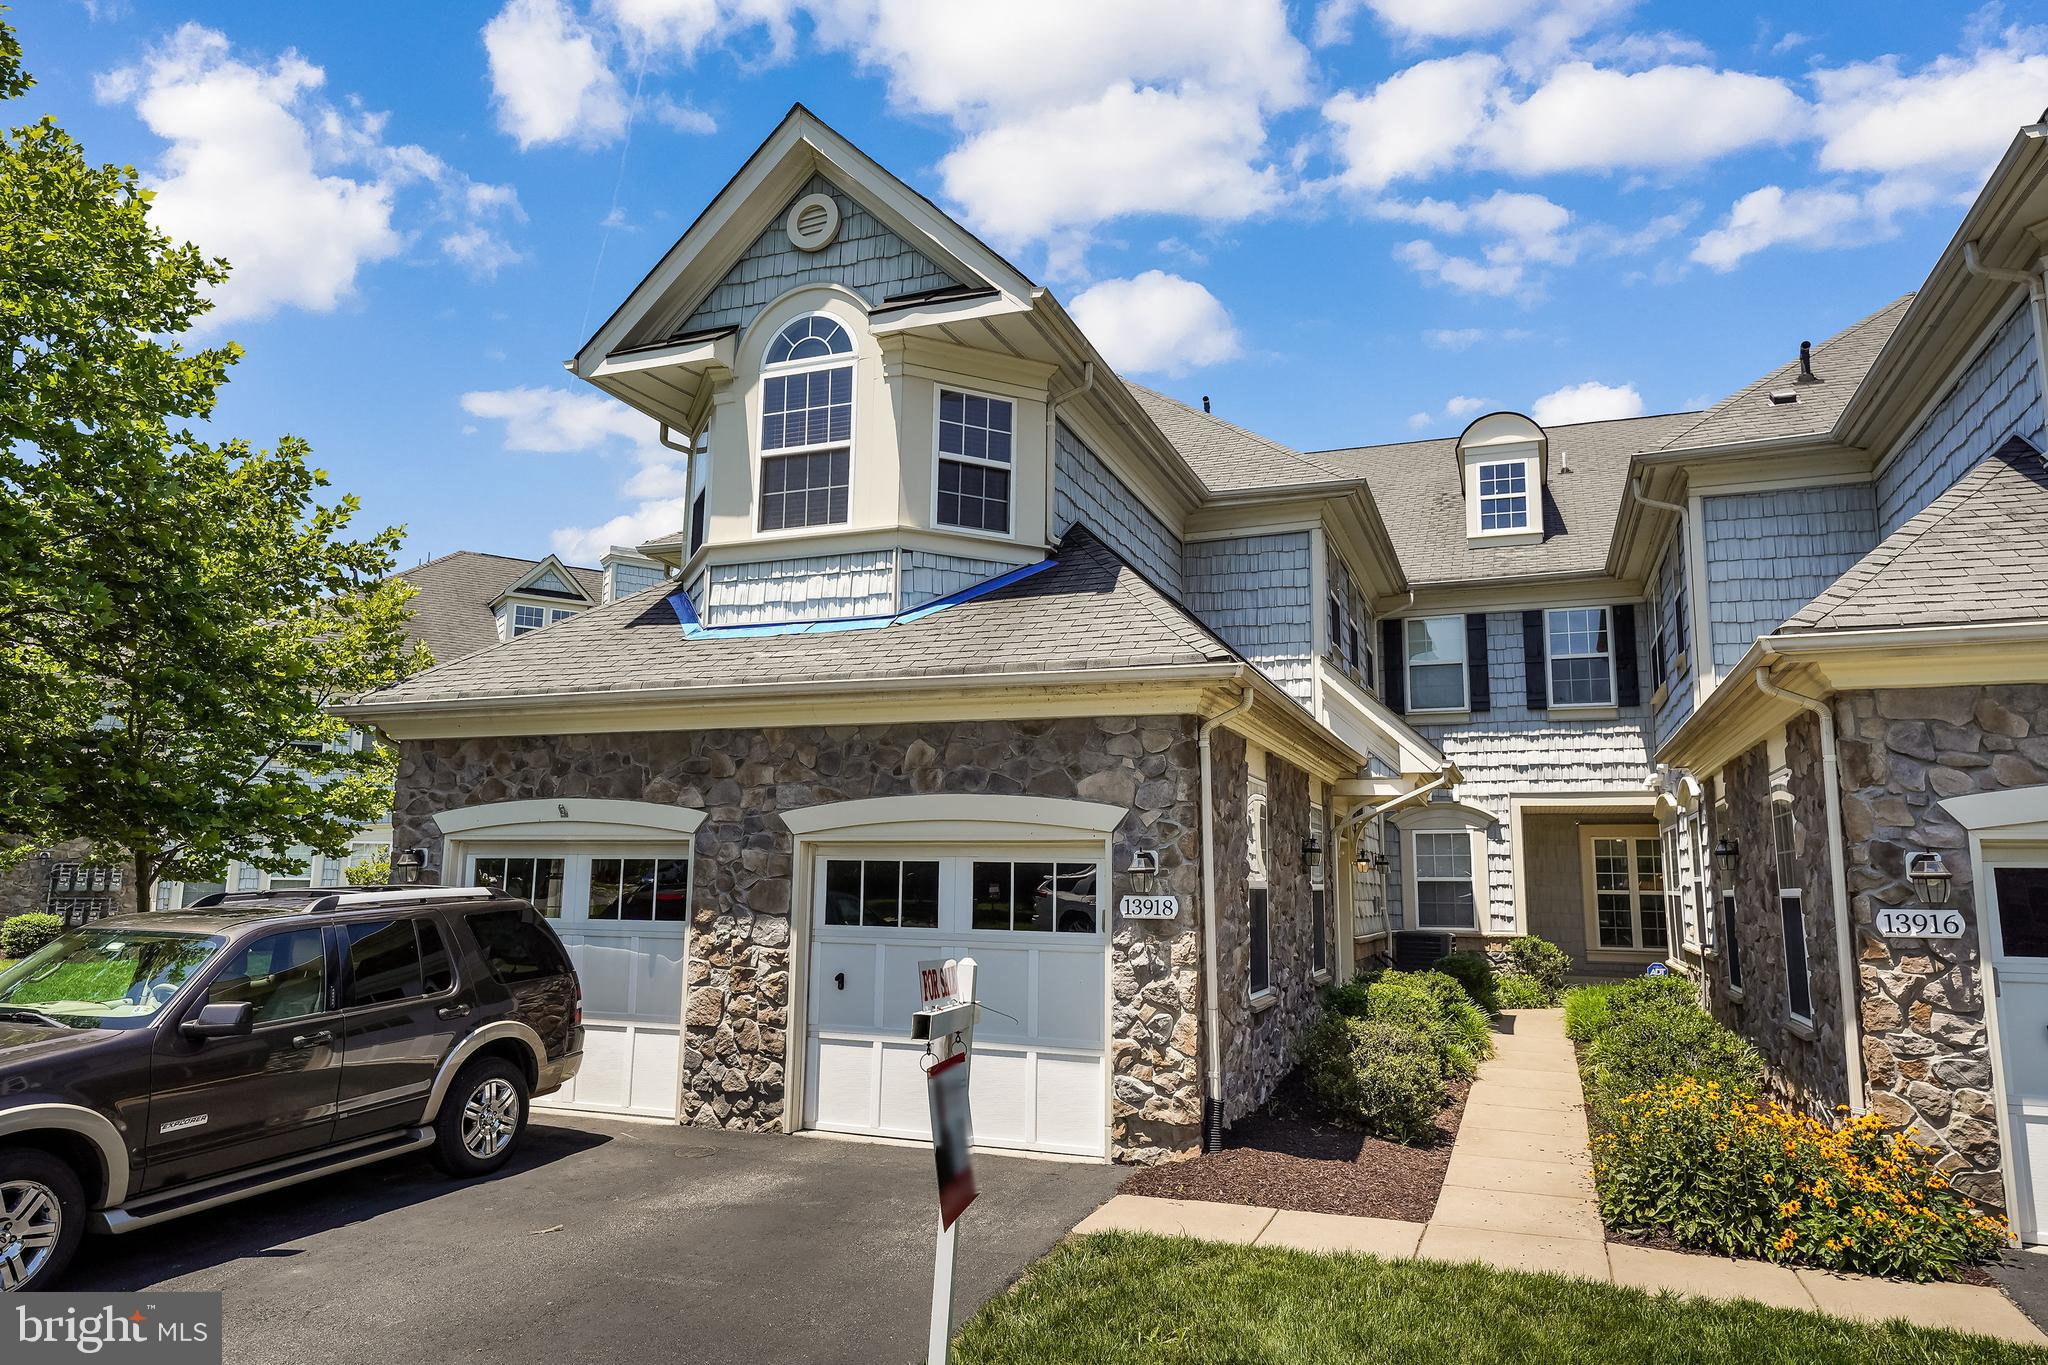 ***HOA JUST APPROVED REPLACING THE ROOF AT HOA COST****DRAMATIC CONDO/TOWNHOME VILLA IN BELMONT BAY